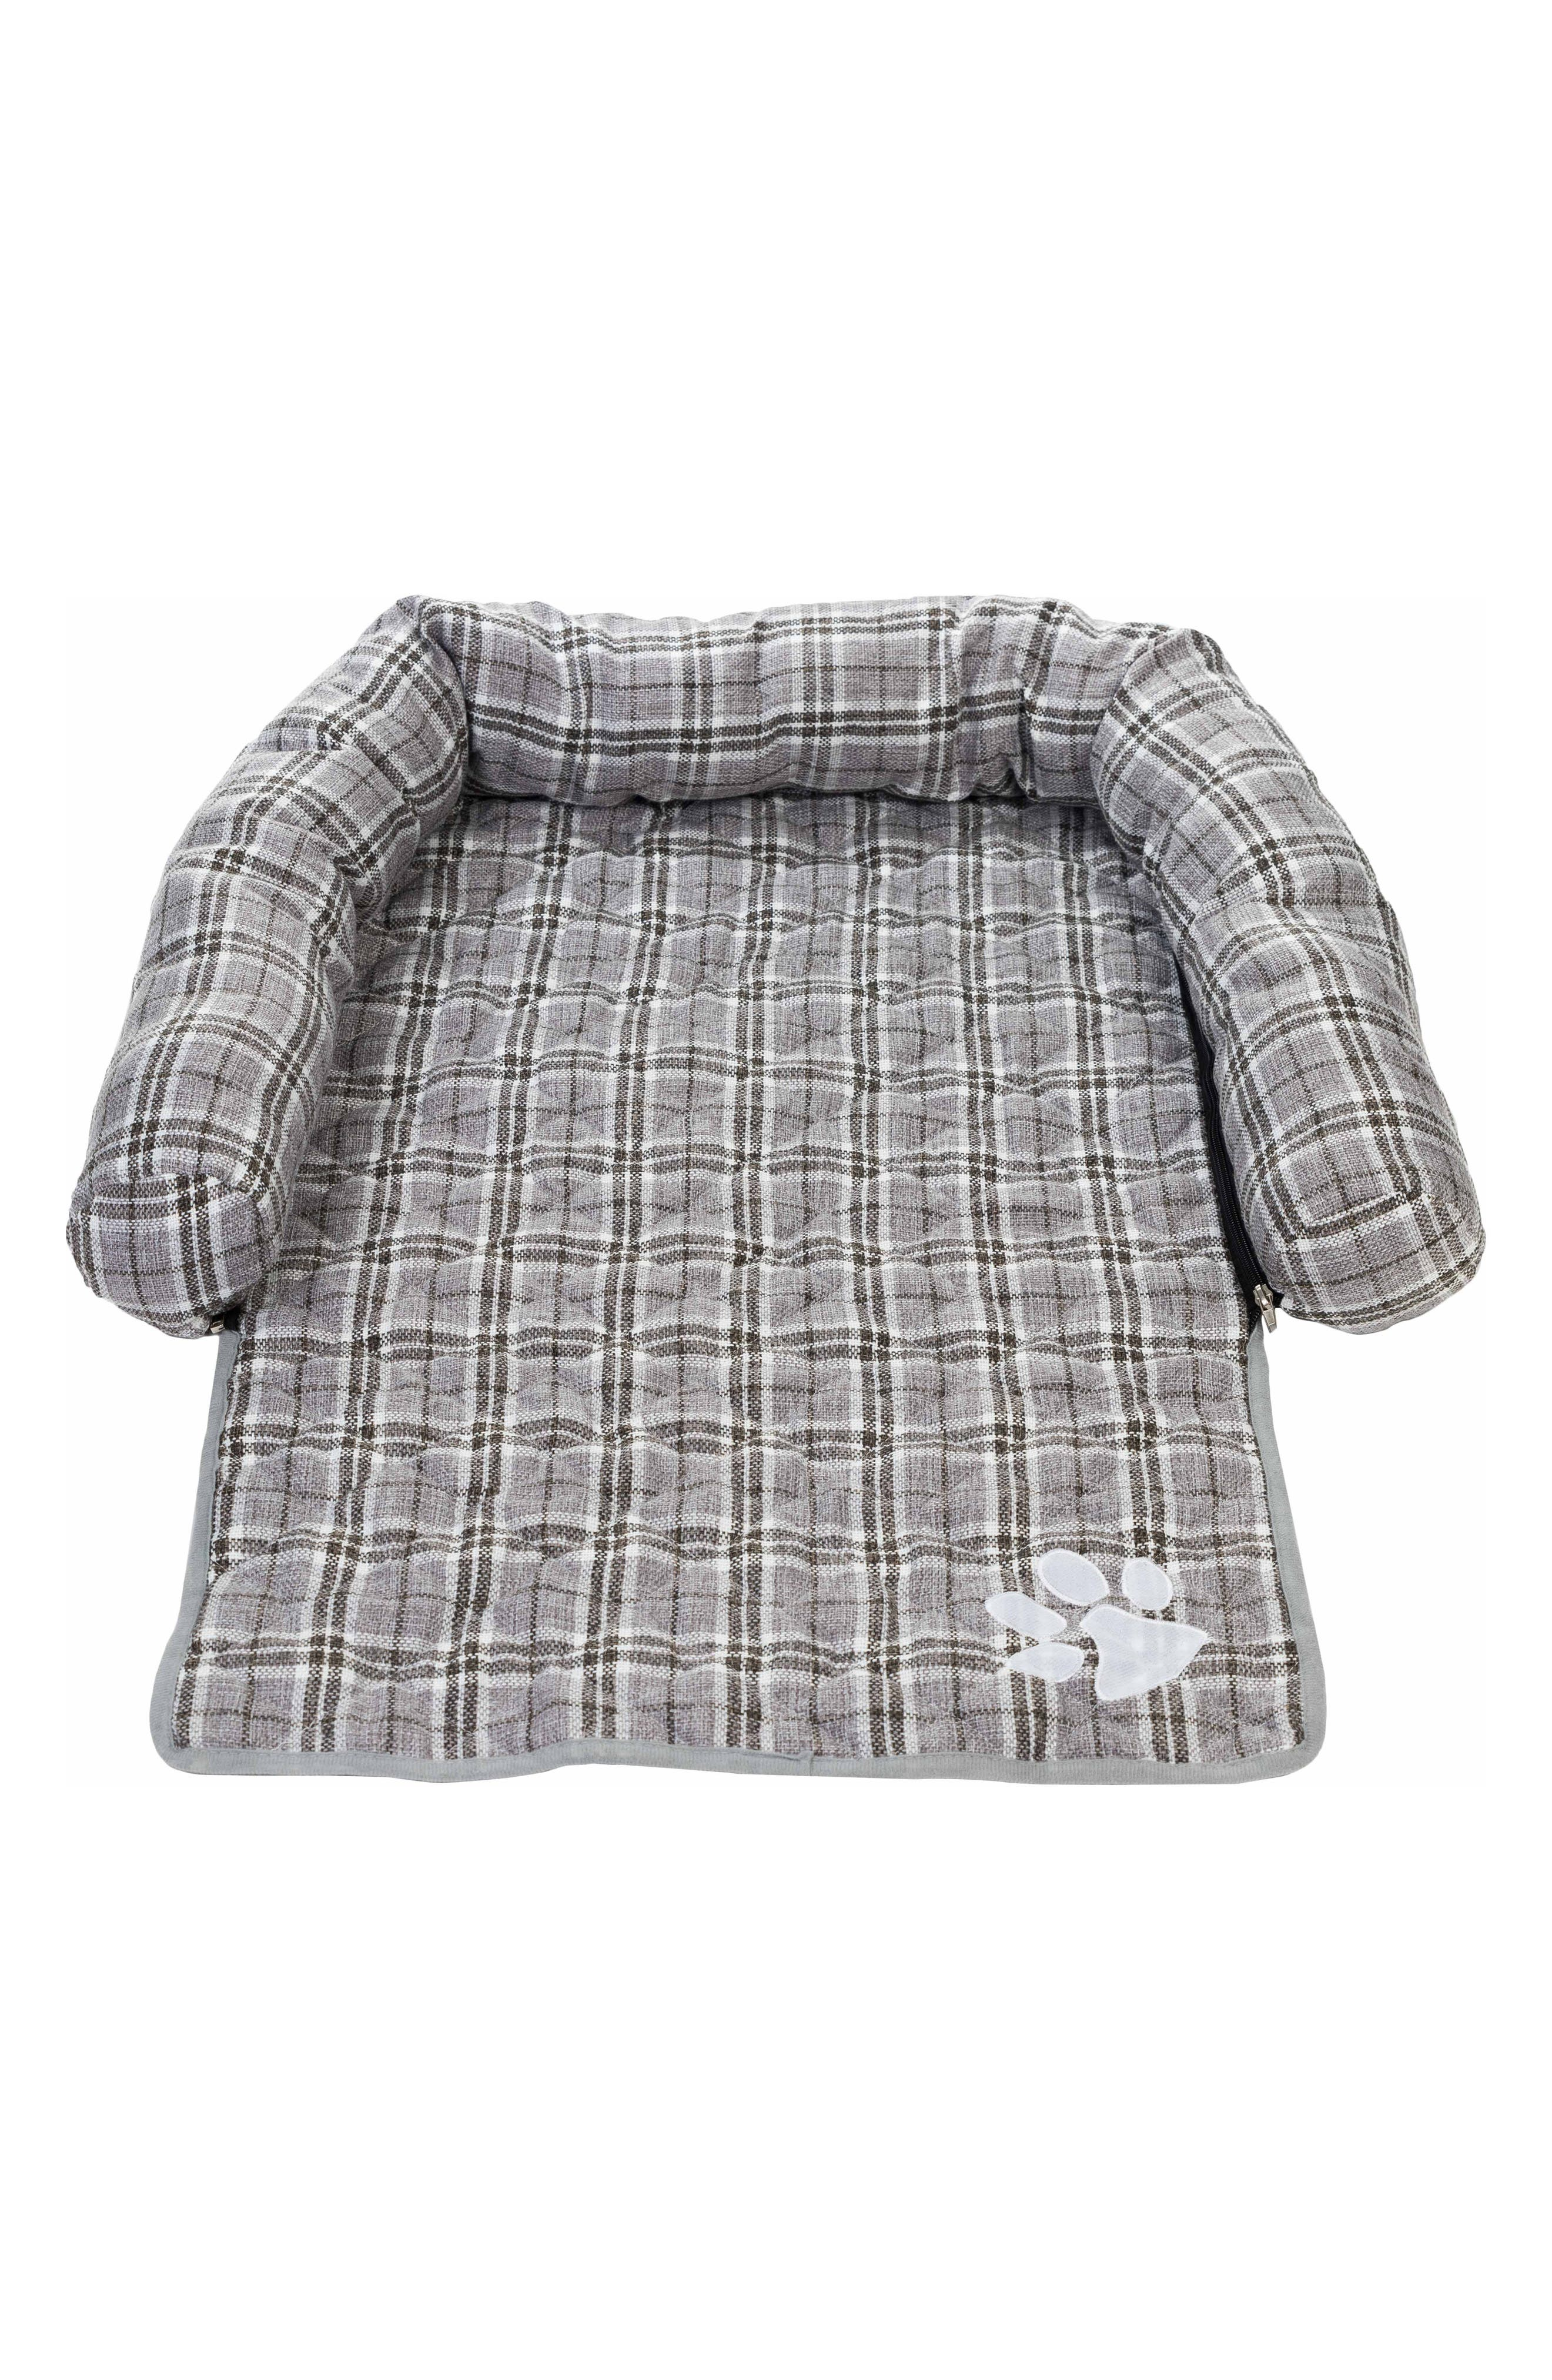 Harlee Reversible Pet Chair Cover,                         Main,                         color, GREY